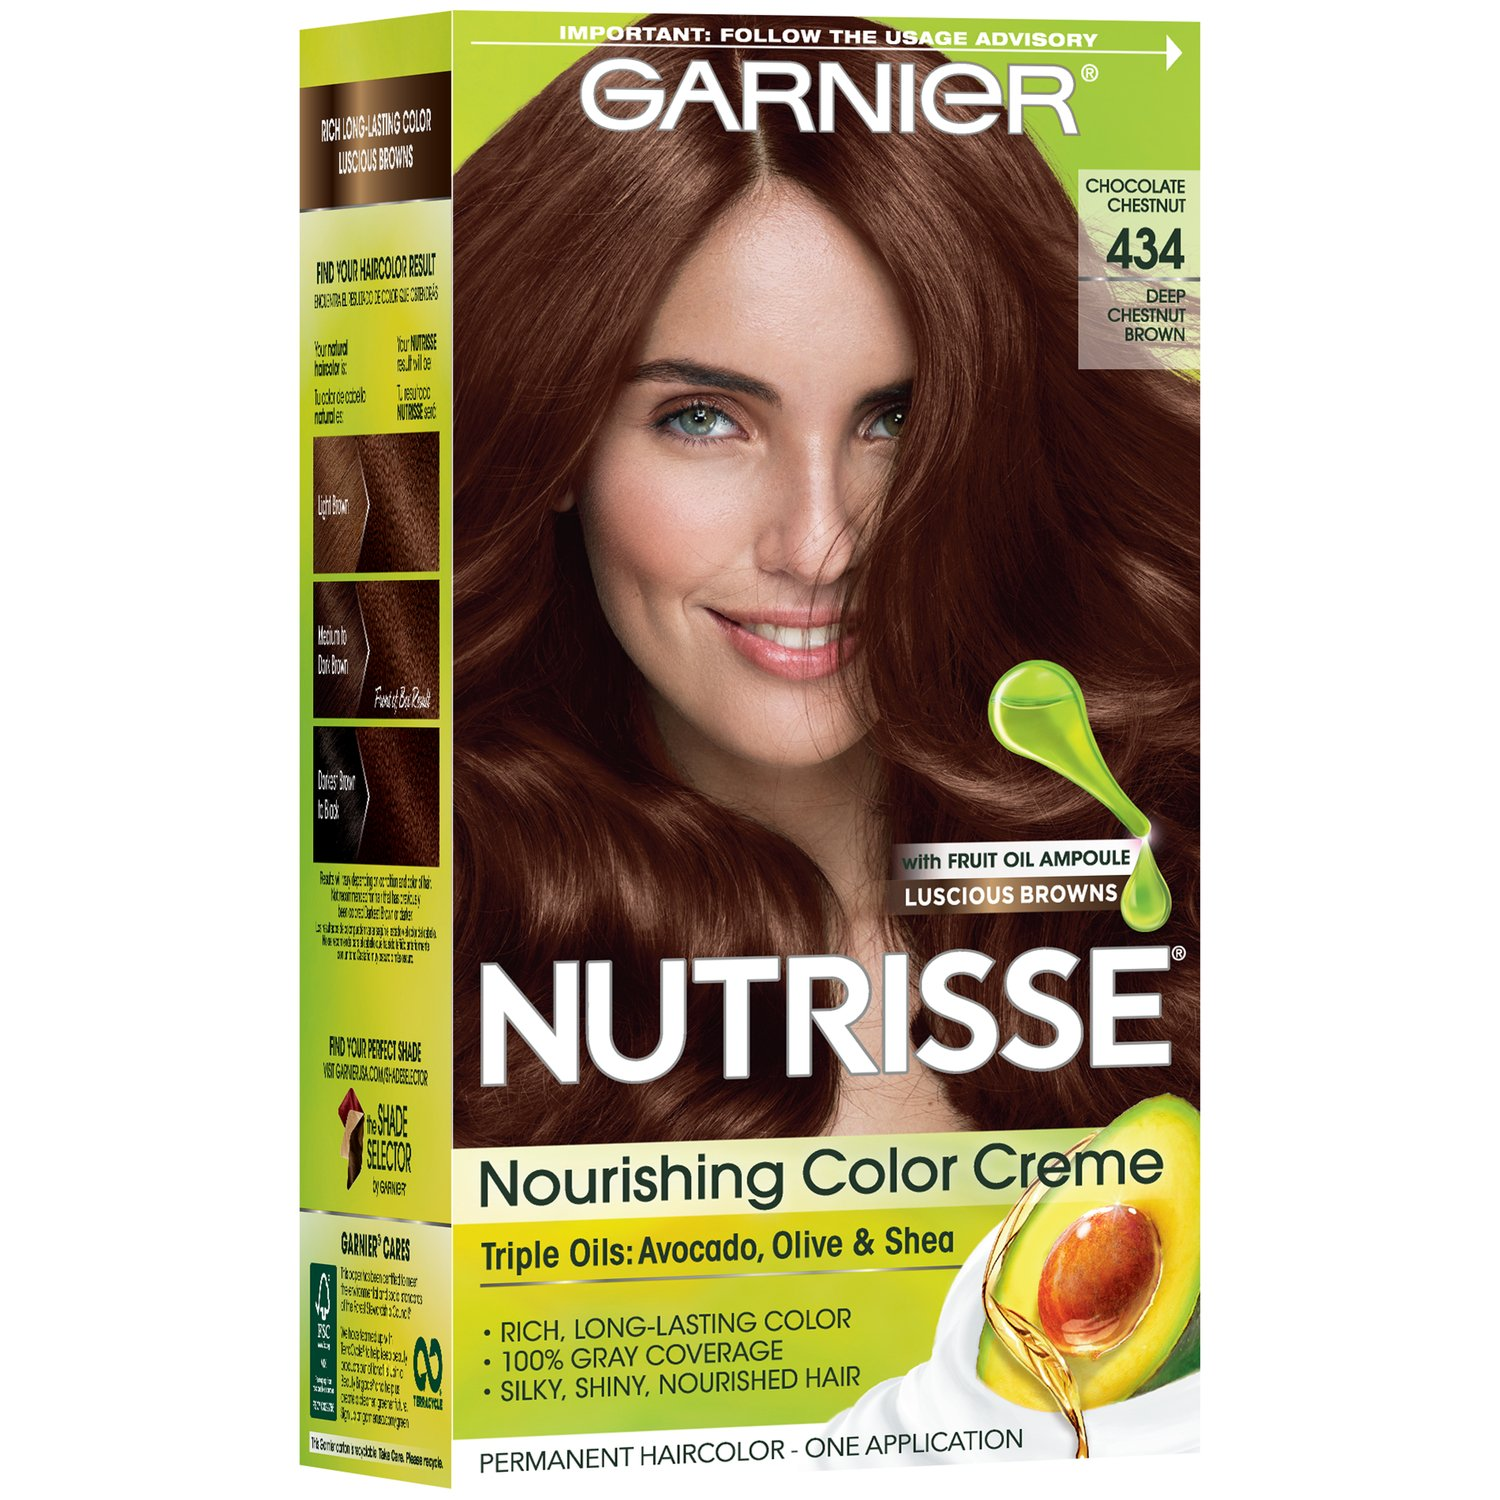 Garnier Nutrisse Nourishing Color Creme 434 Deep Chestnut Brown